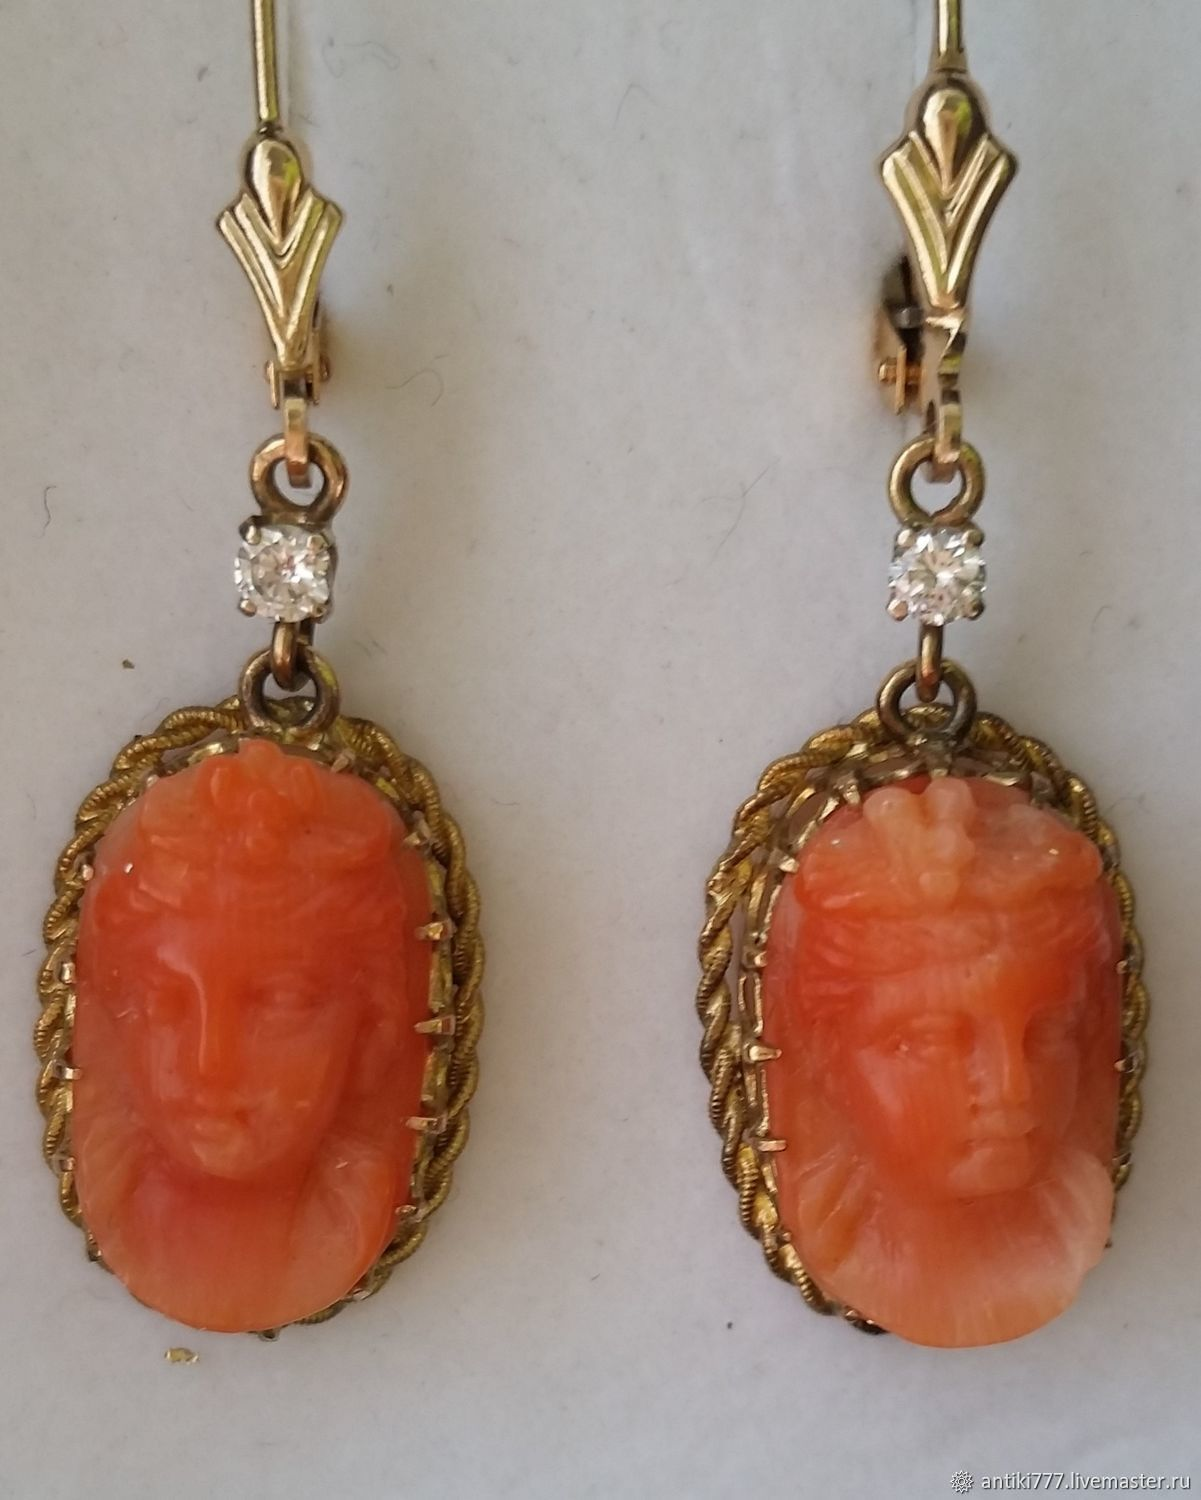 Gold earrings with diamonds and coral cameos of the 19th century, Vintage earrings, Moscow,  Фото №1